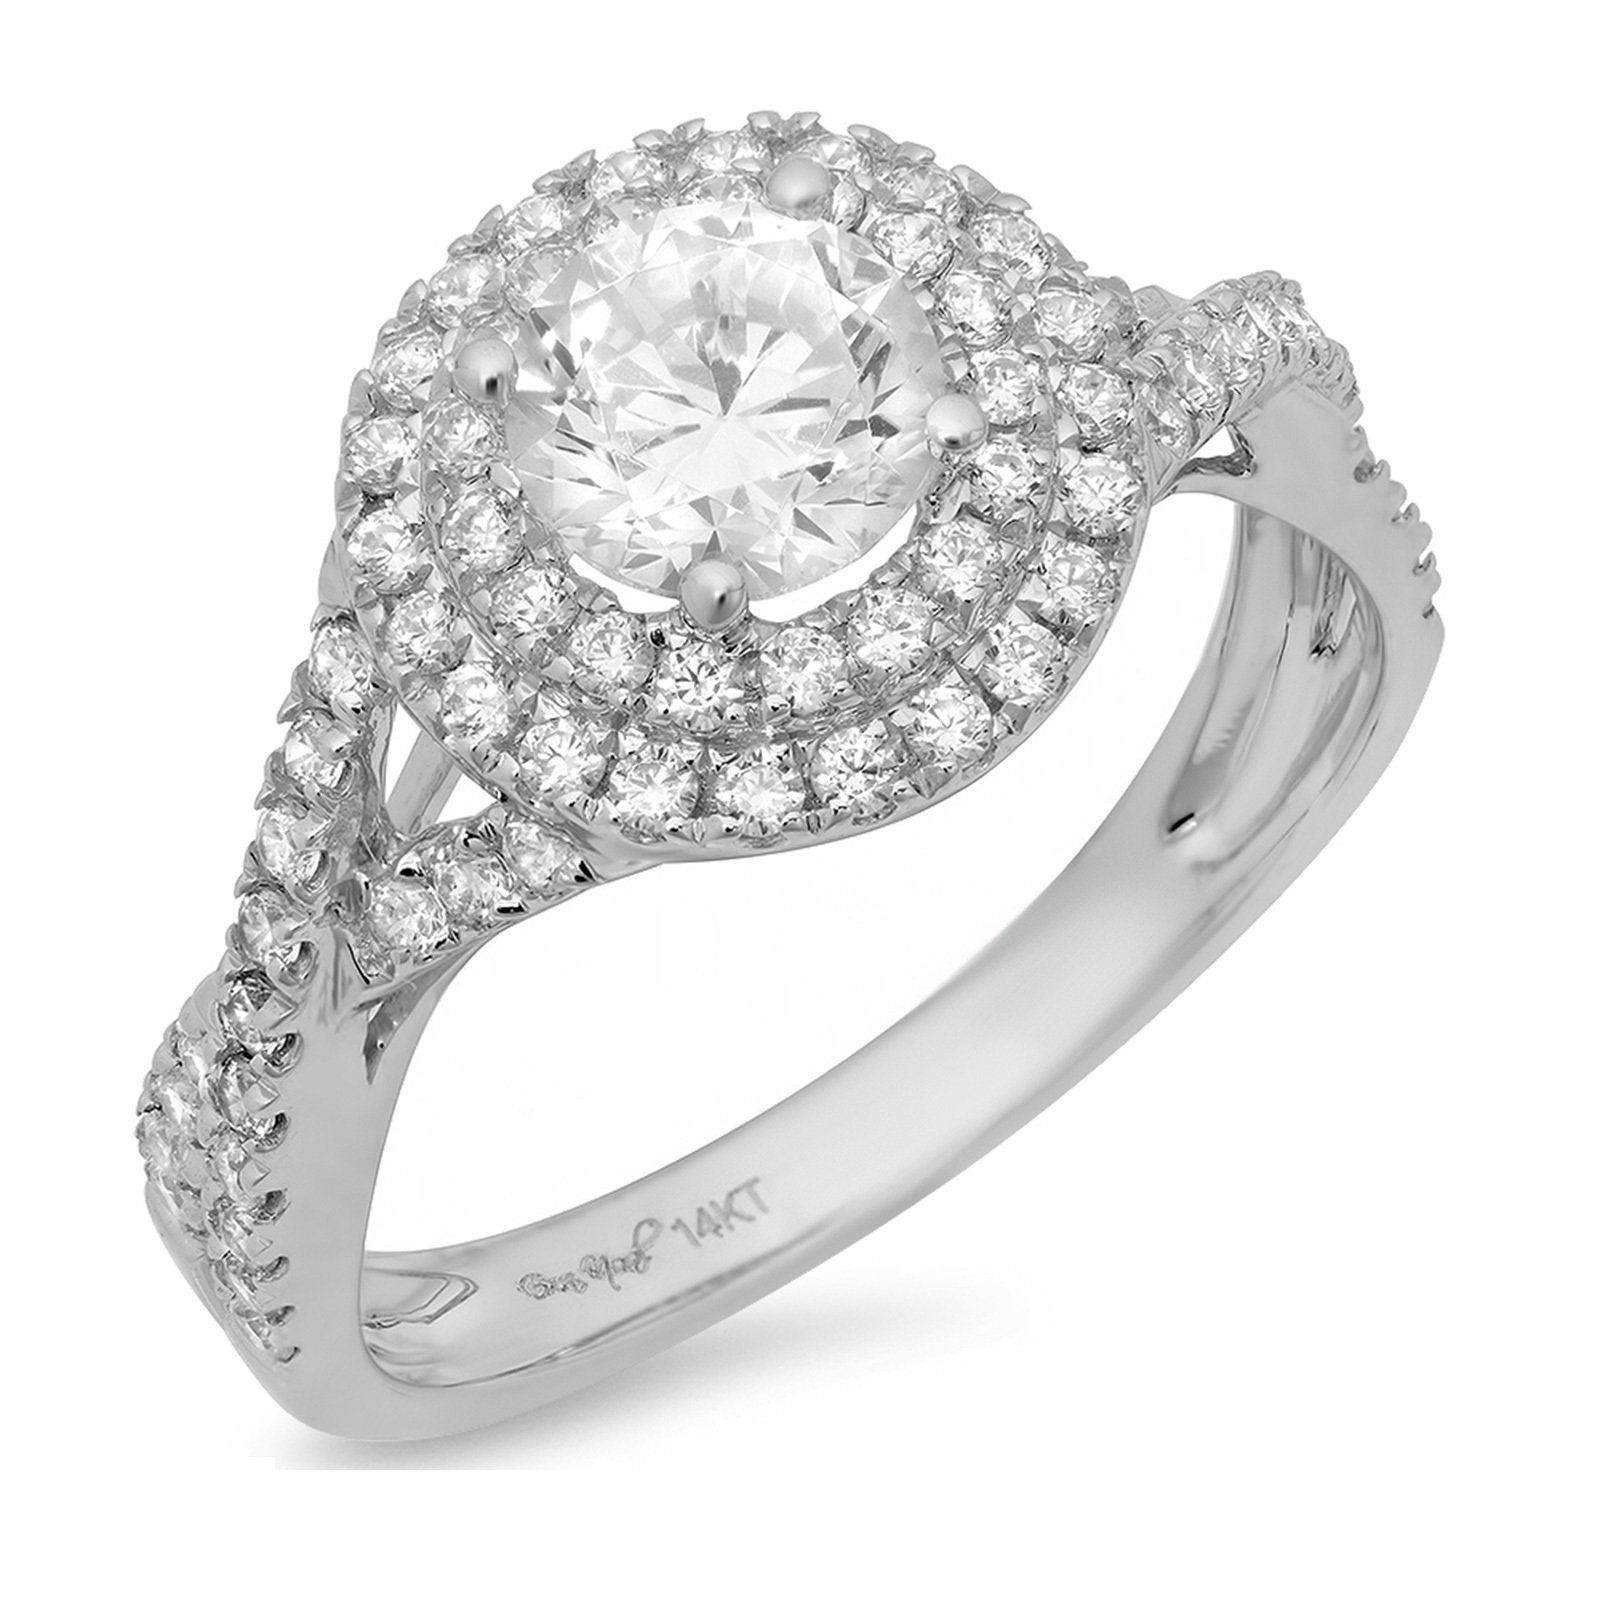 Clara Pucci 1.3 CT Round Cut Pave Halo Promide Bridal Engagement Ring Band 14k White Gold, Size 6.5